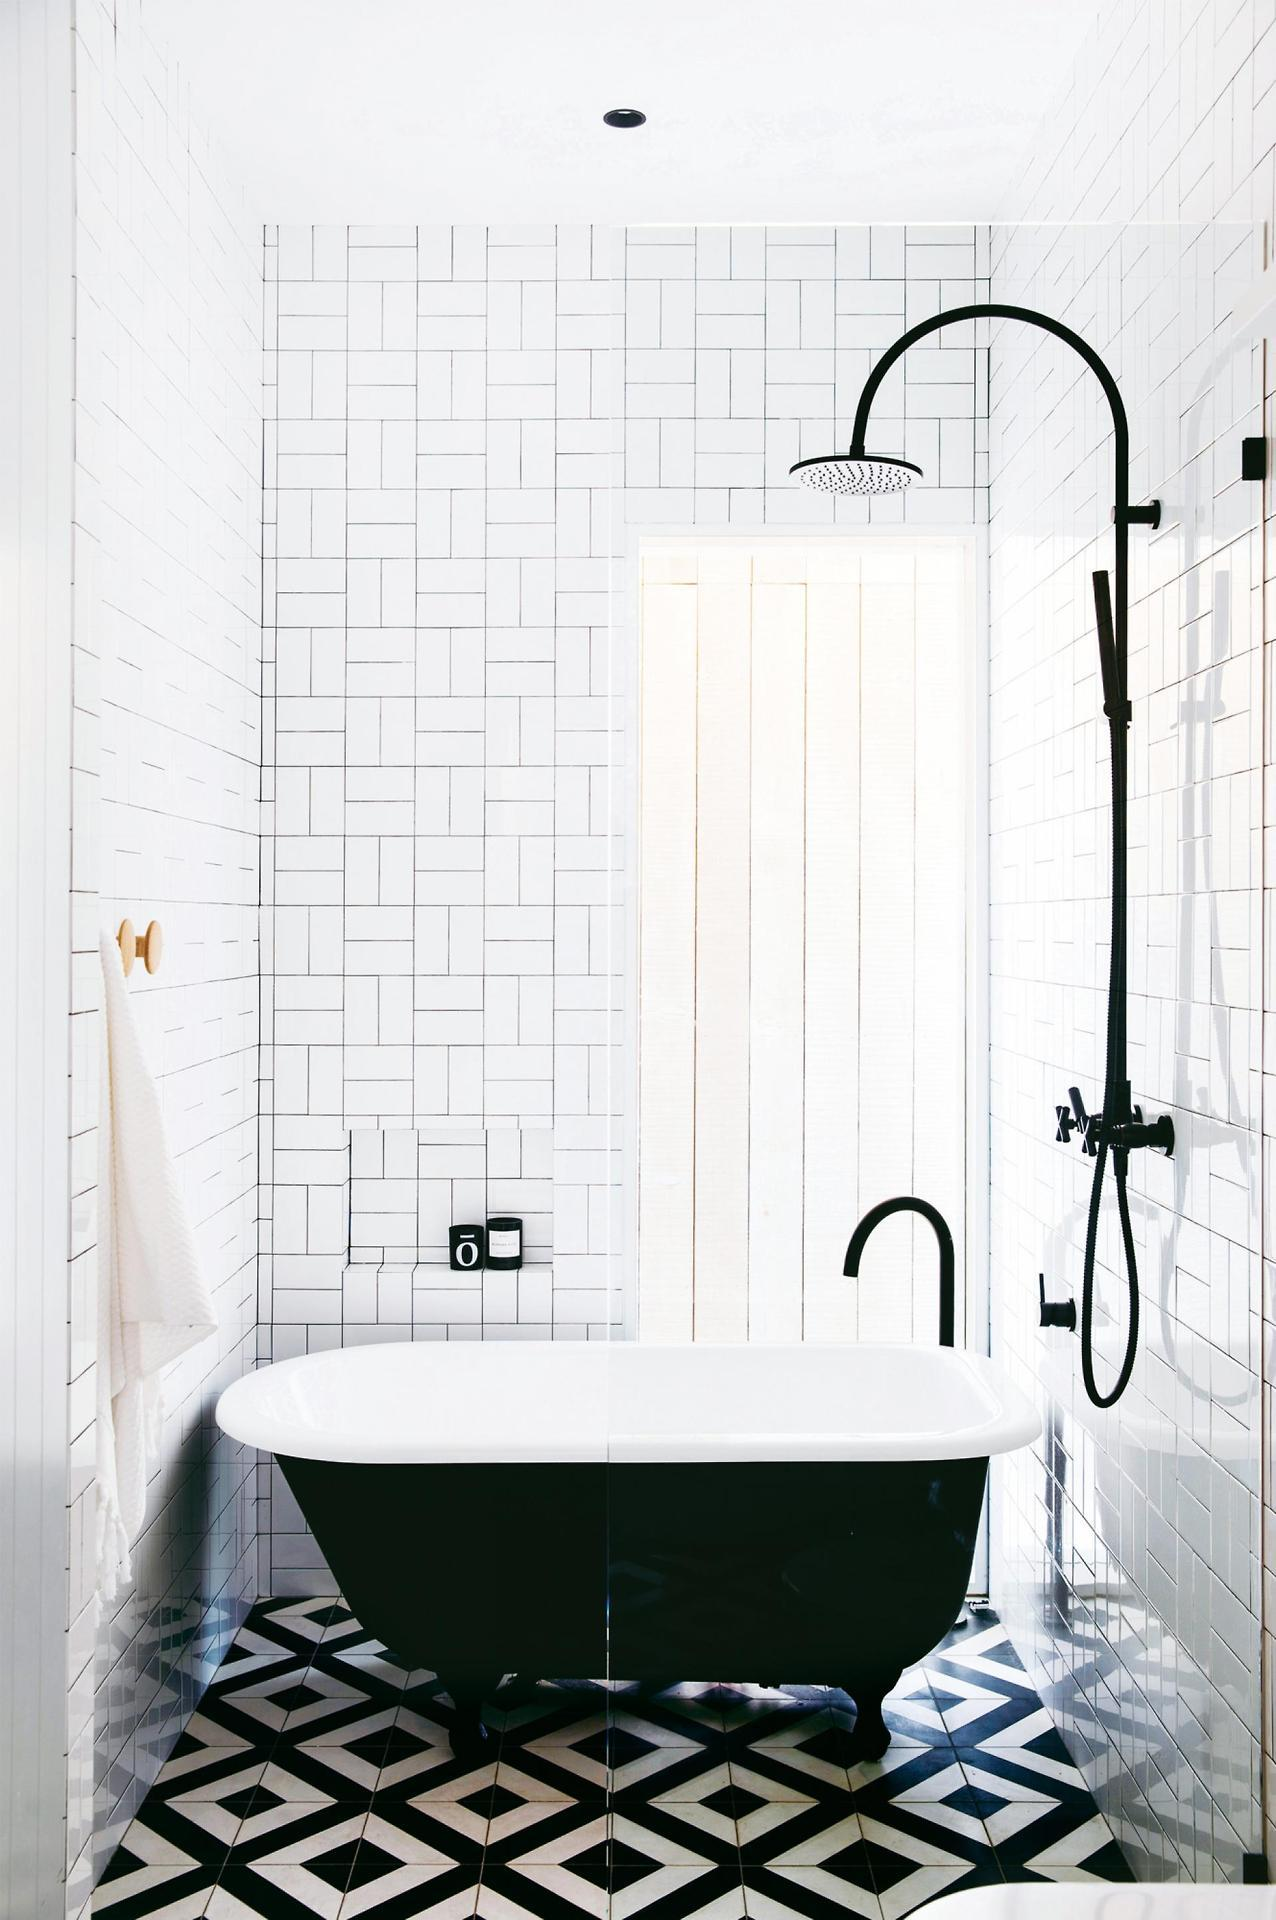 The Nordroom - 25 Inspiring Bathrooms With Geometric Tiles  image: Stephanie Powell